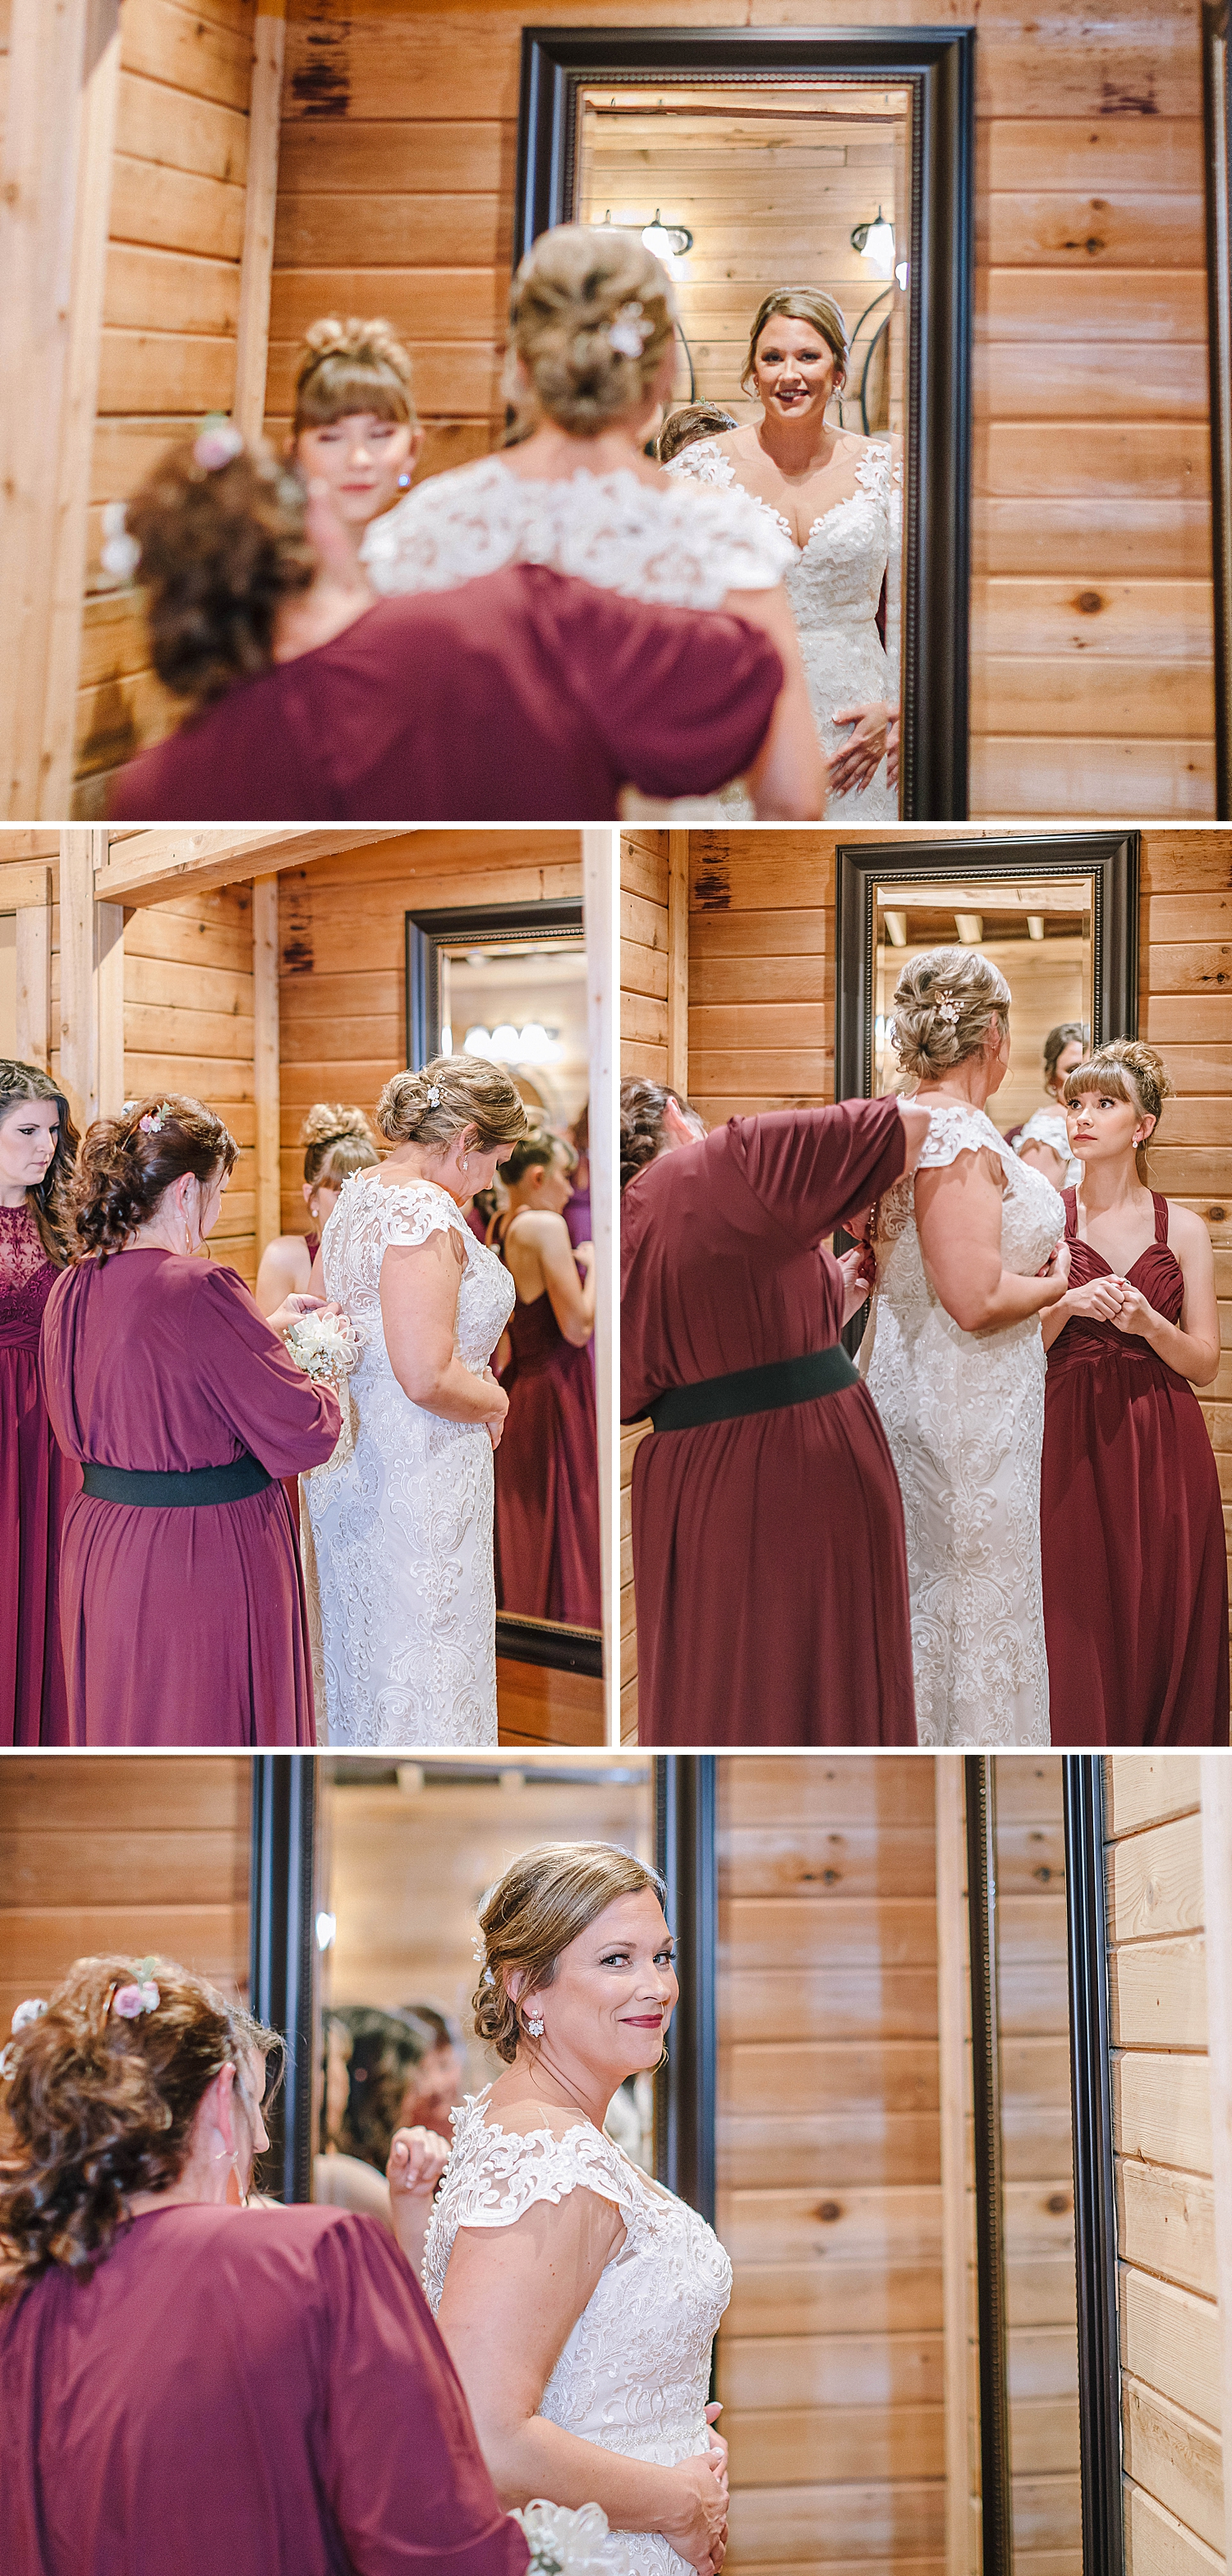 Geronimo-Oaks-Wedding-Venue-Seguin-Texas-Elegant-Navy-Burgundy-Wedding-Carly-Barton-Photography_0012.jpg